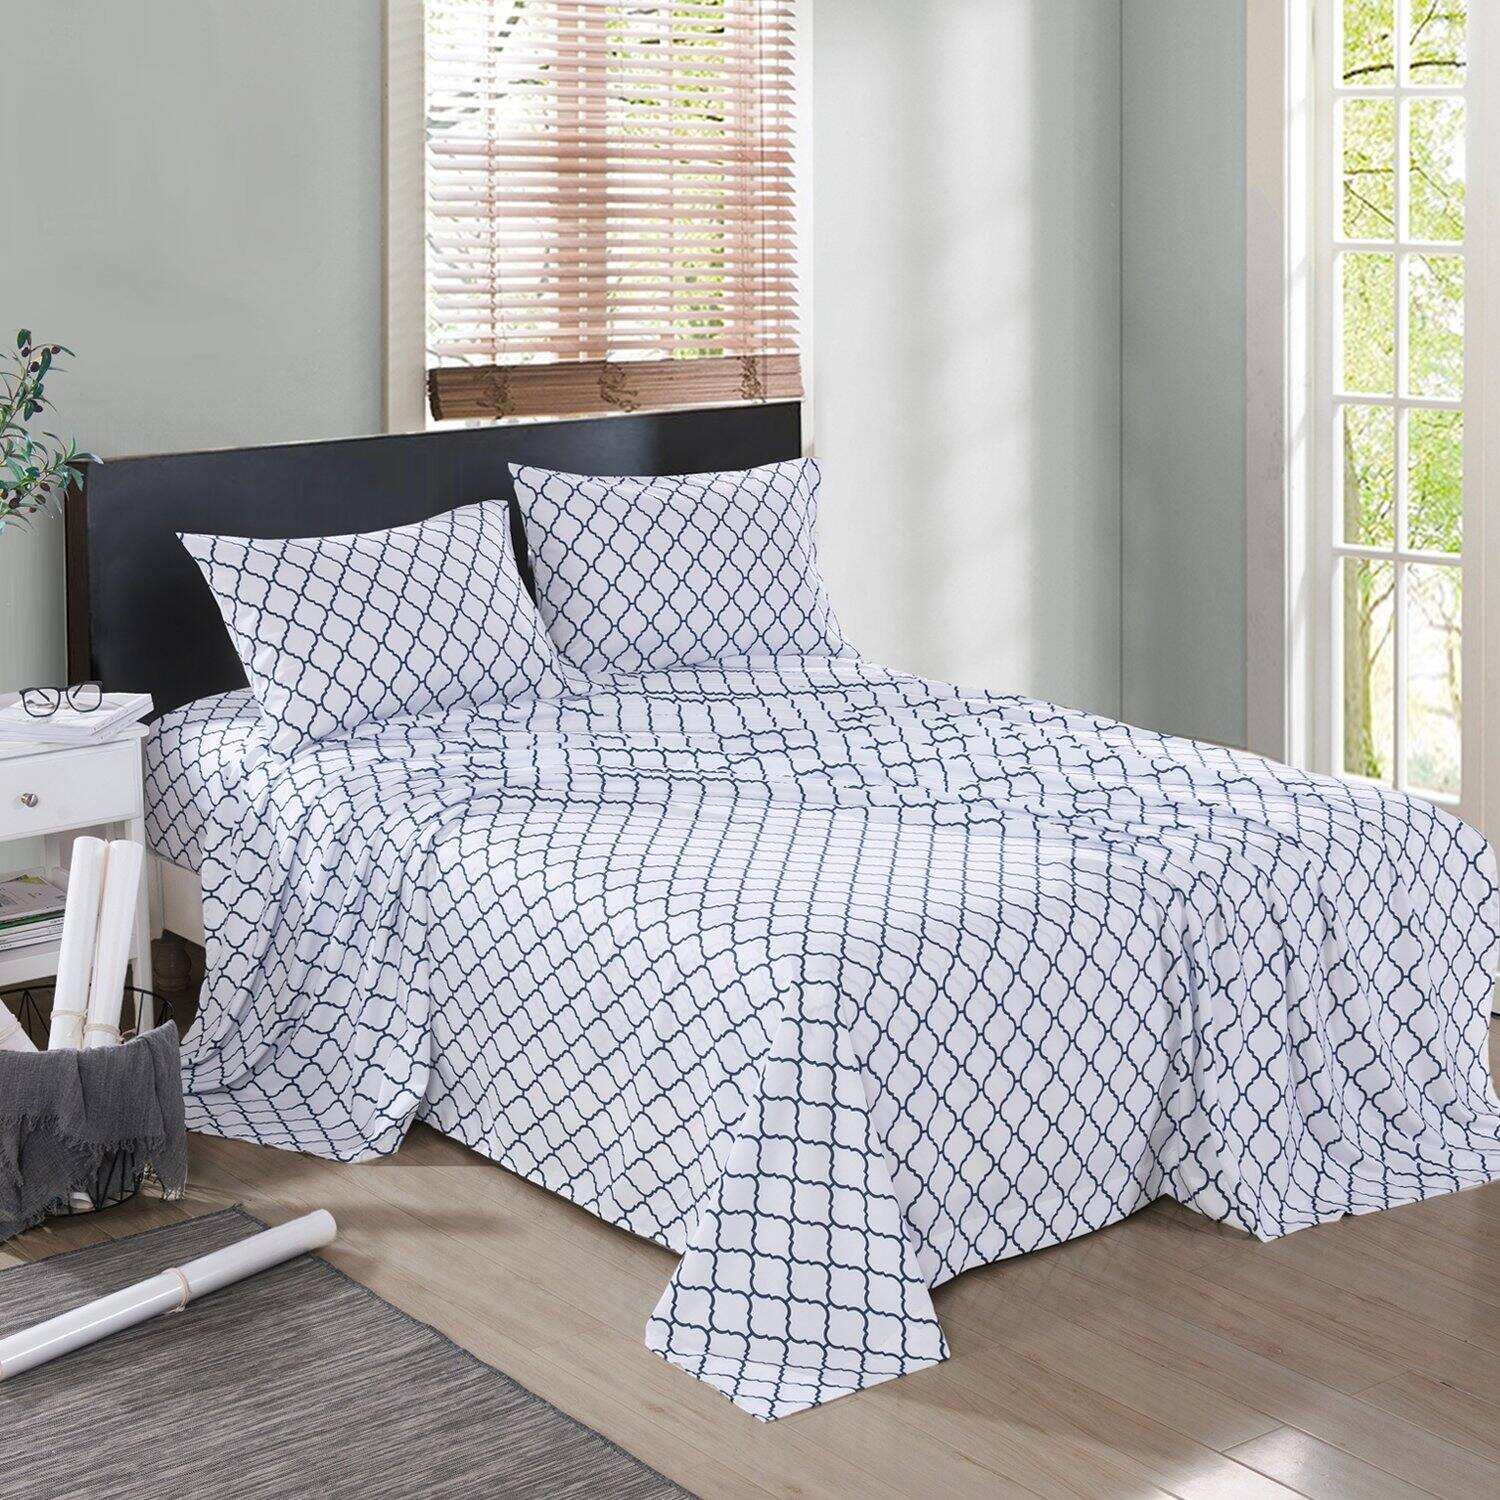 Collection 4 Pieces Ultra Soft Printed Bed Sheet Sets(various color and sizes) from $12.59